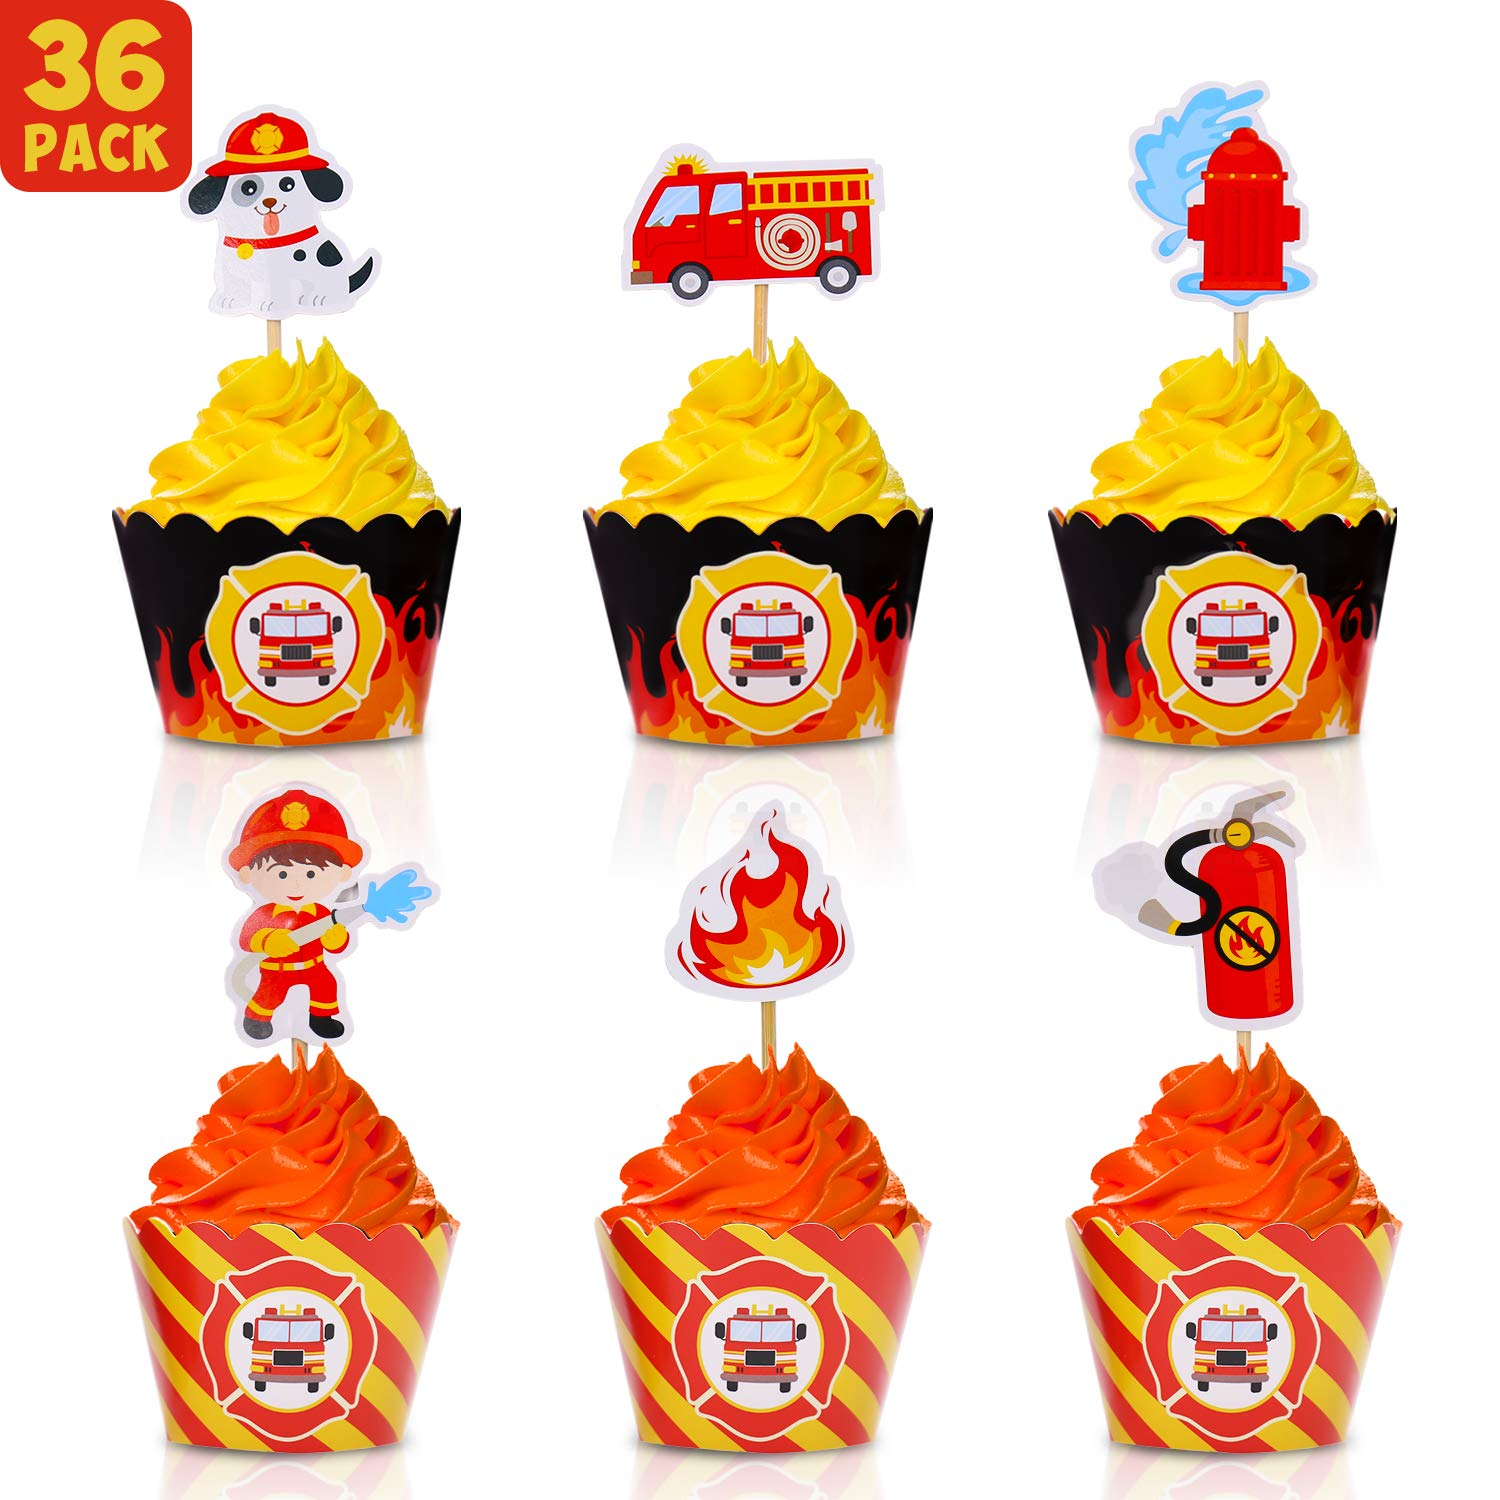 Bessmoso 36 Pack Fire Truck Cupcake Toppers & Adjustable Cupcake Wrappers Pefect for Baby Shower or Firefighter Fireman Fire Truck Theme Birthday Party Decorations Supplies